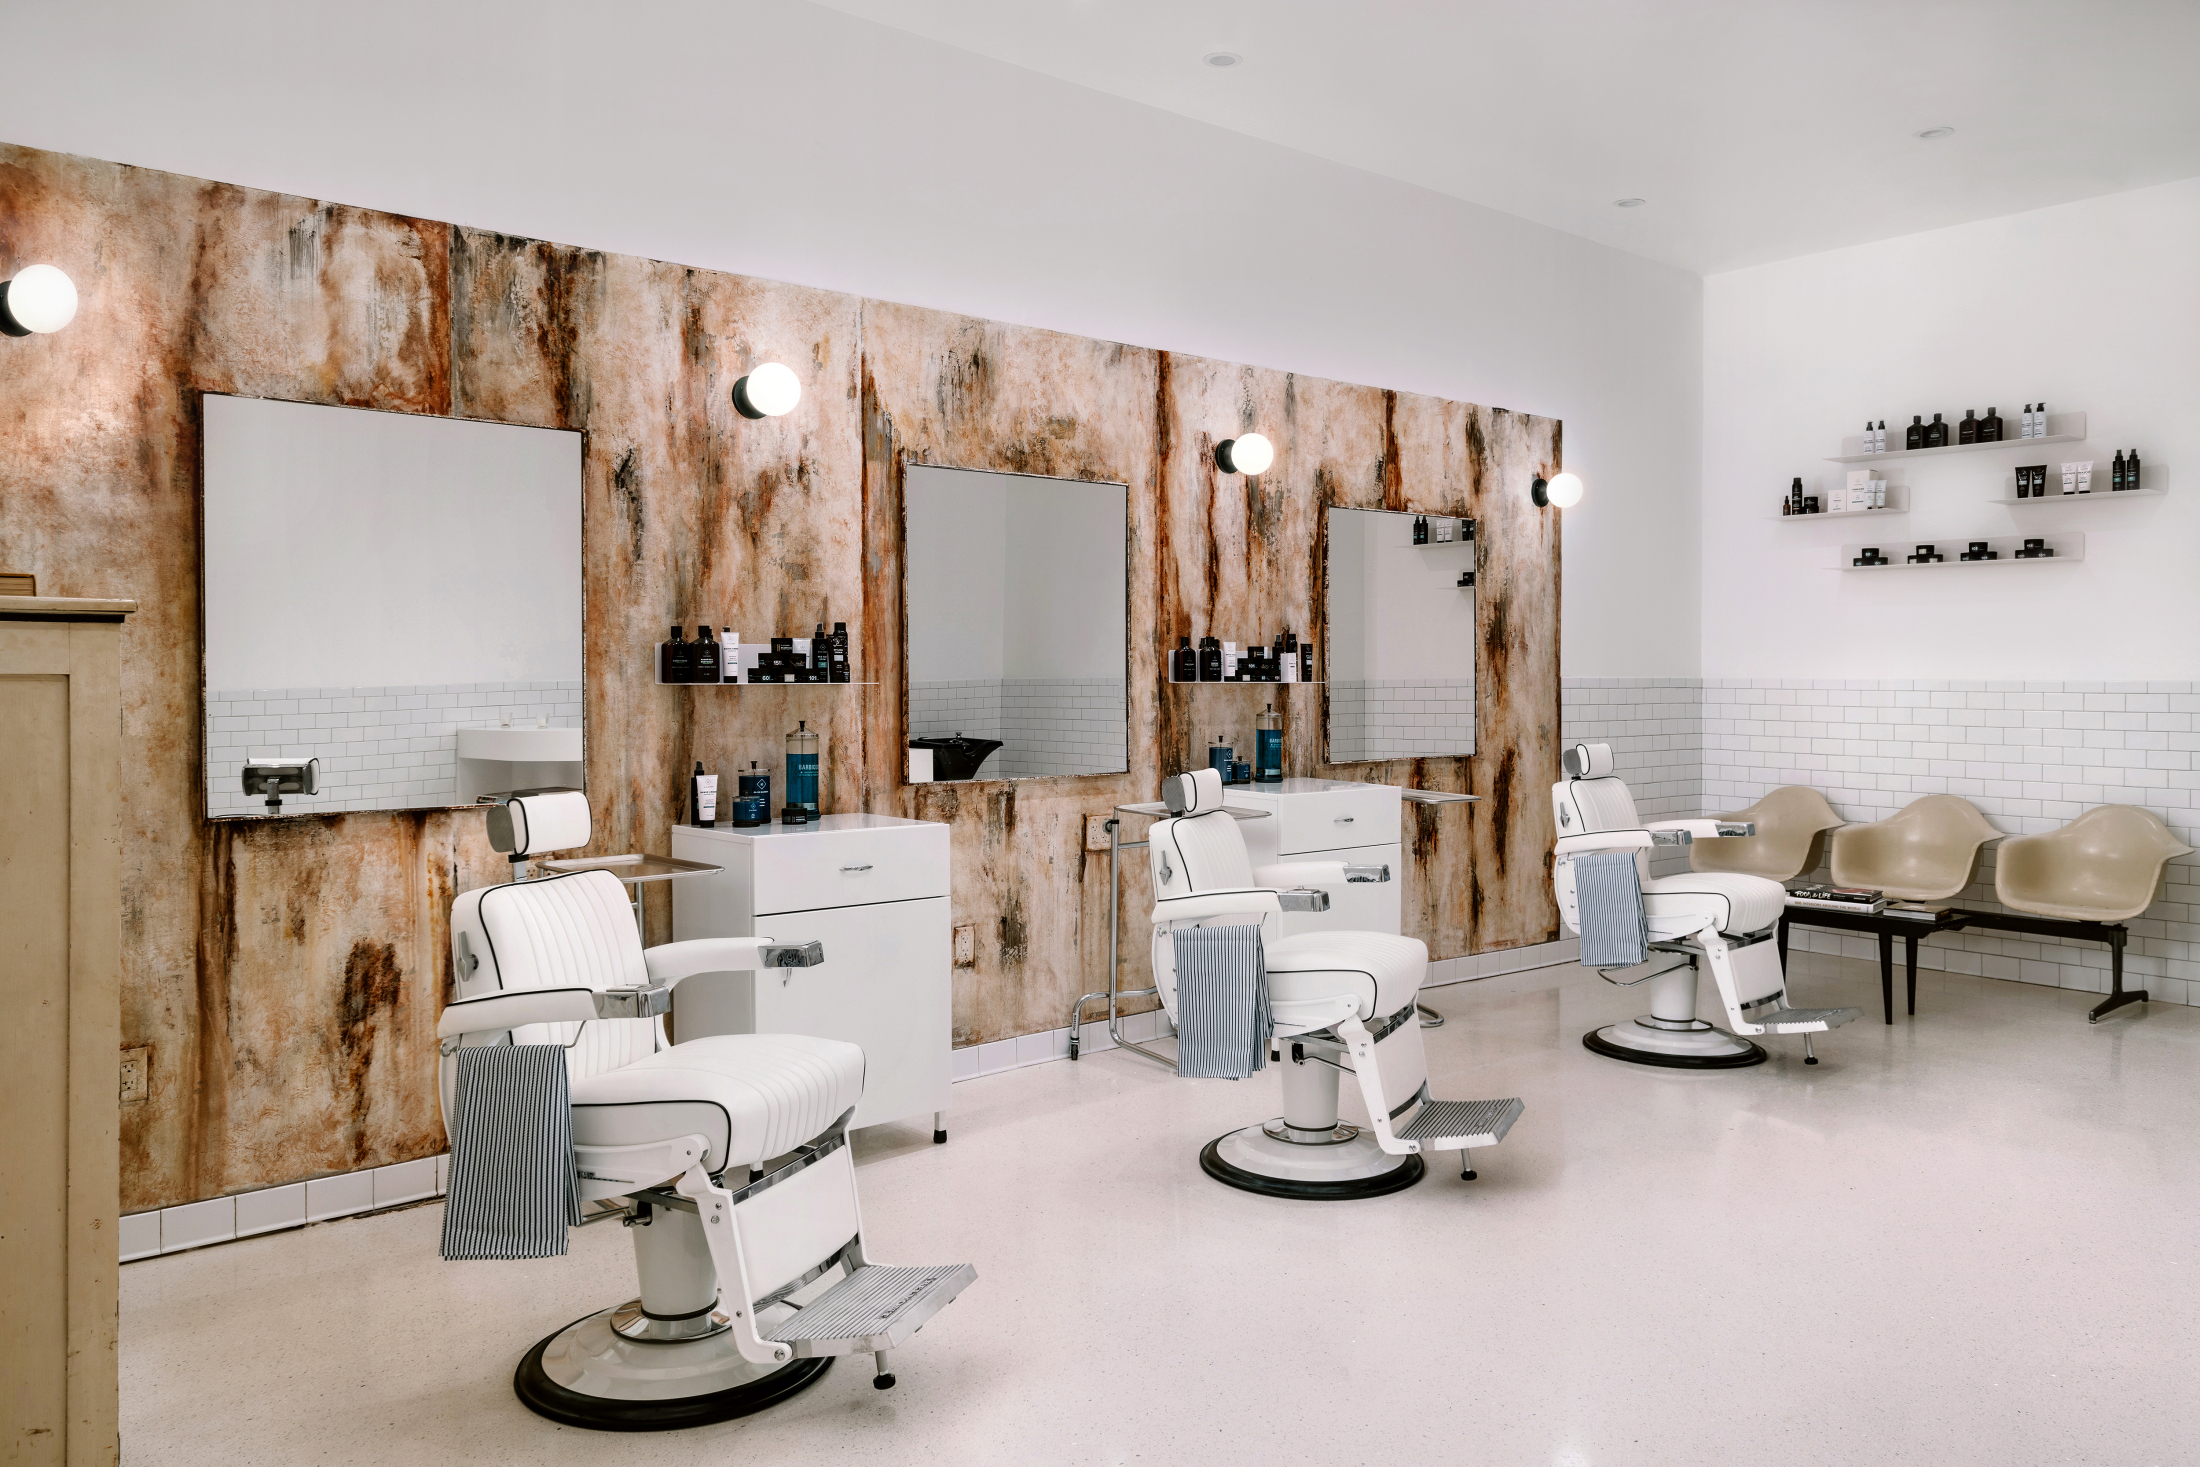 Interior of barber shop with wooden walls and clean white barber chairs